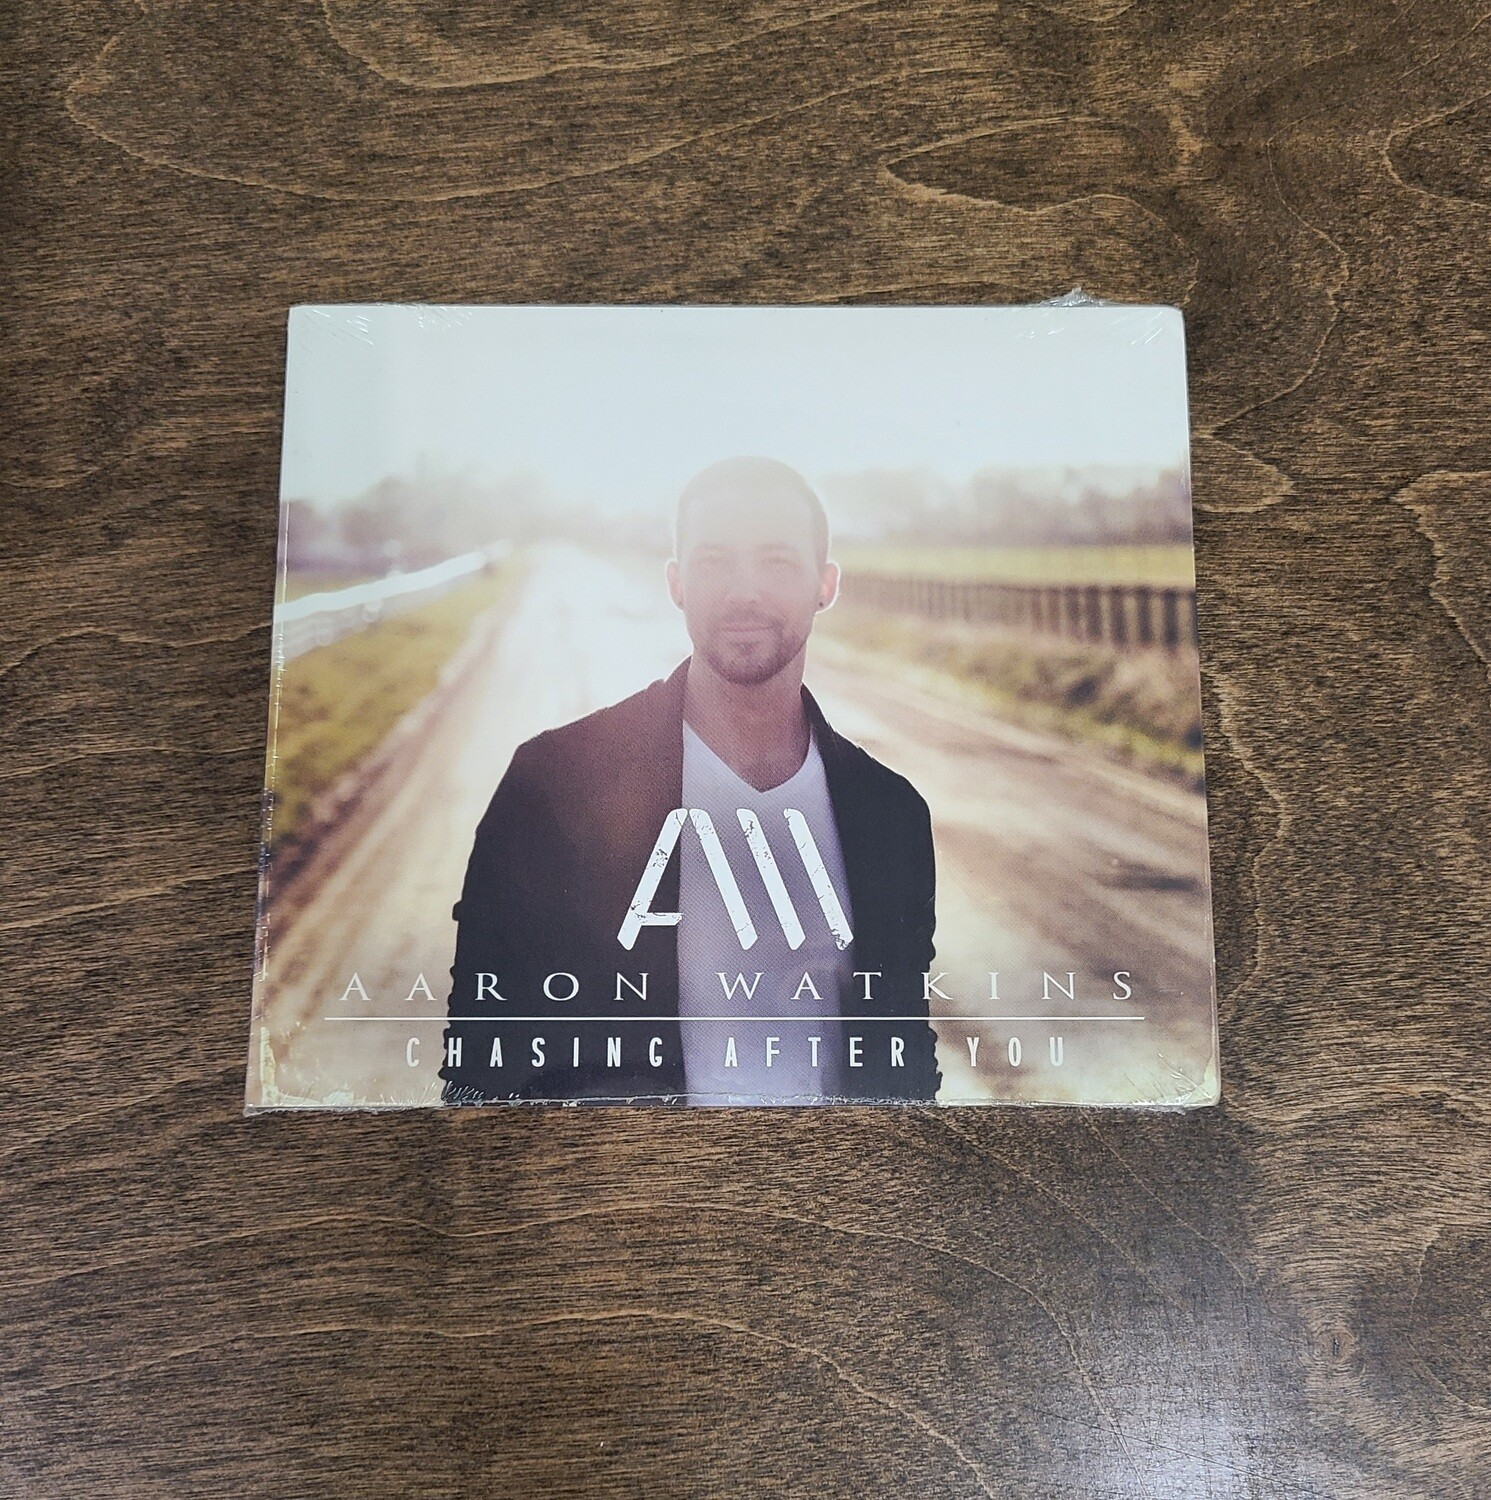 Chasing After You by Aaron Watkins CD